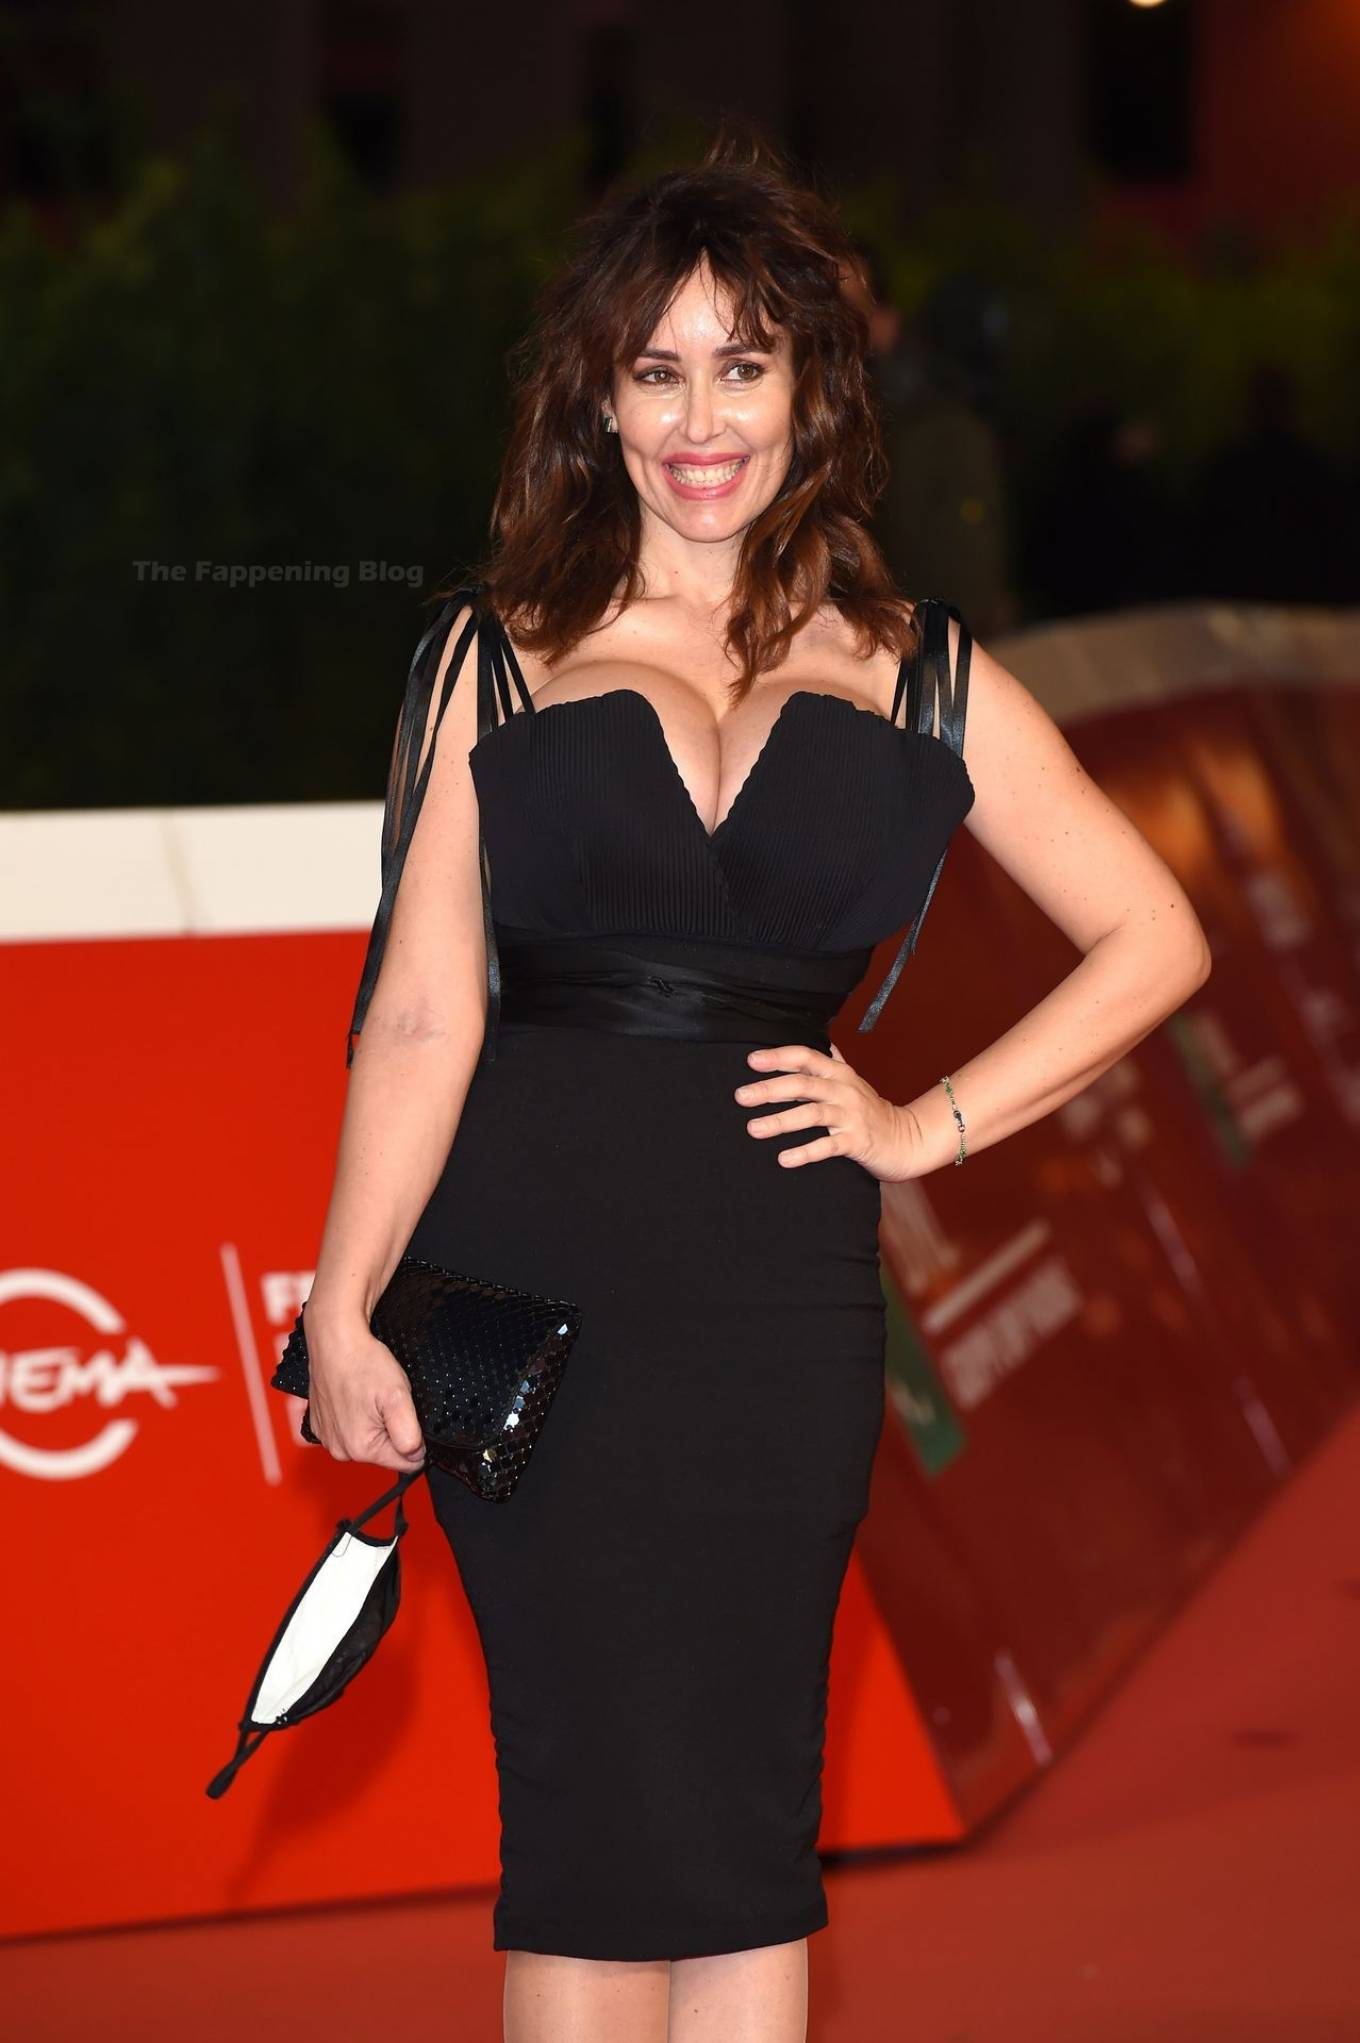 Marilyn Gallo - Red carpet at 2020 Rome Film Festival in Rome